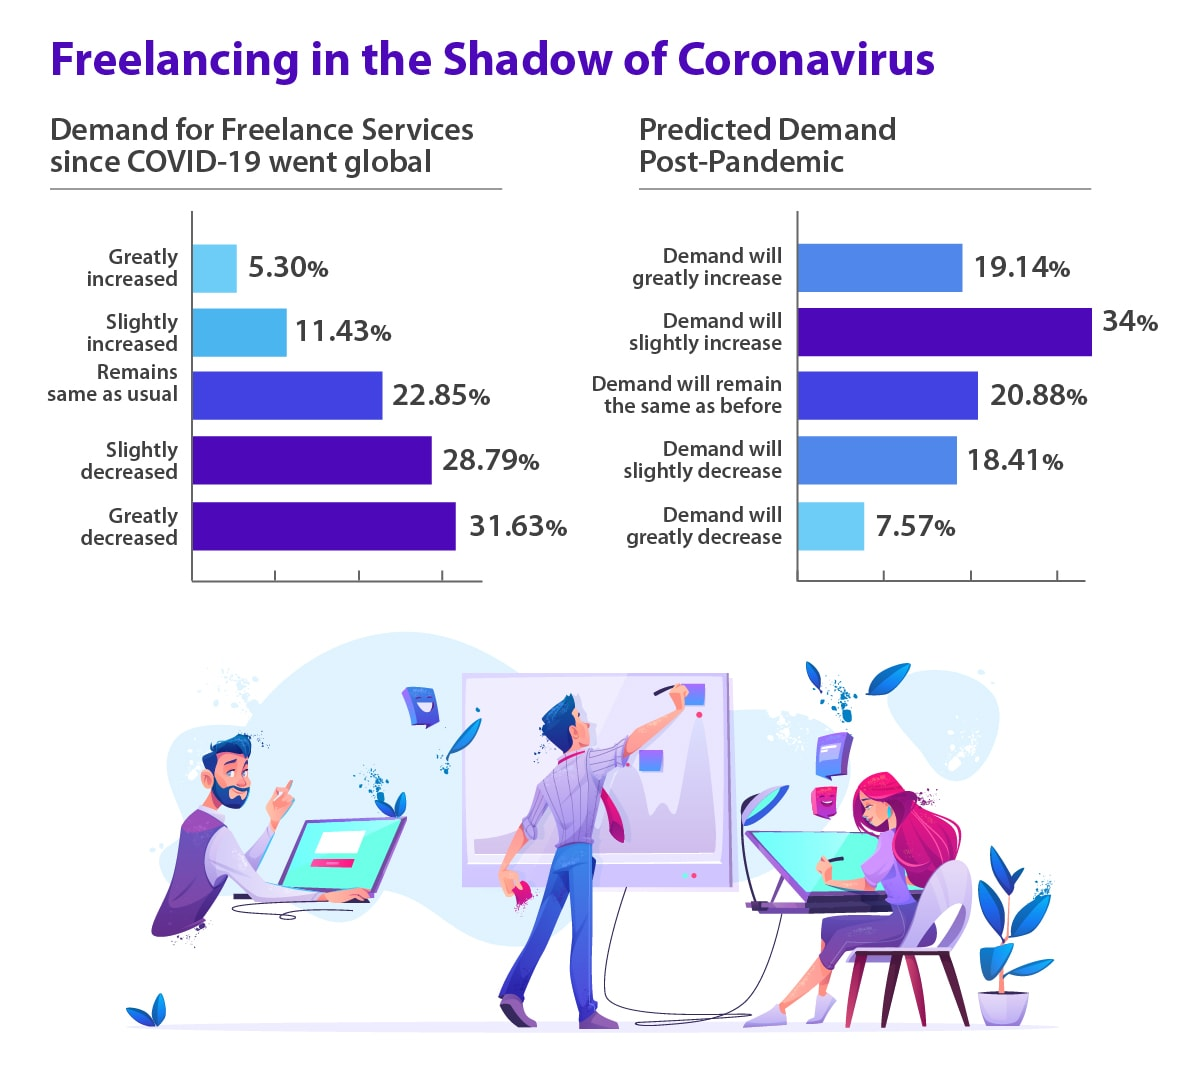 Demand for freelance services during the Coronavirus pandemic and post-lockdown.